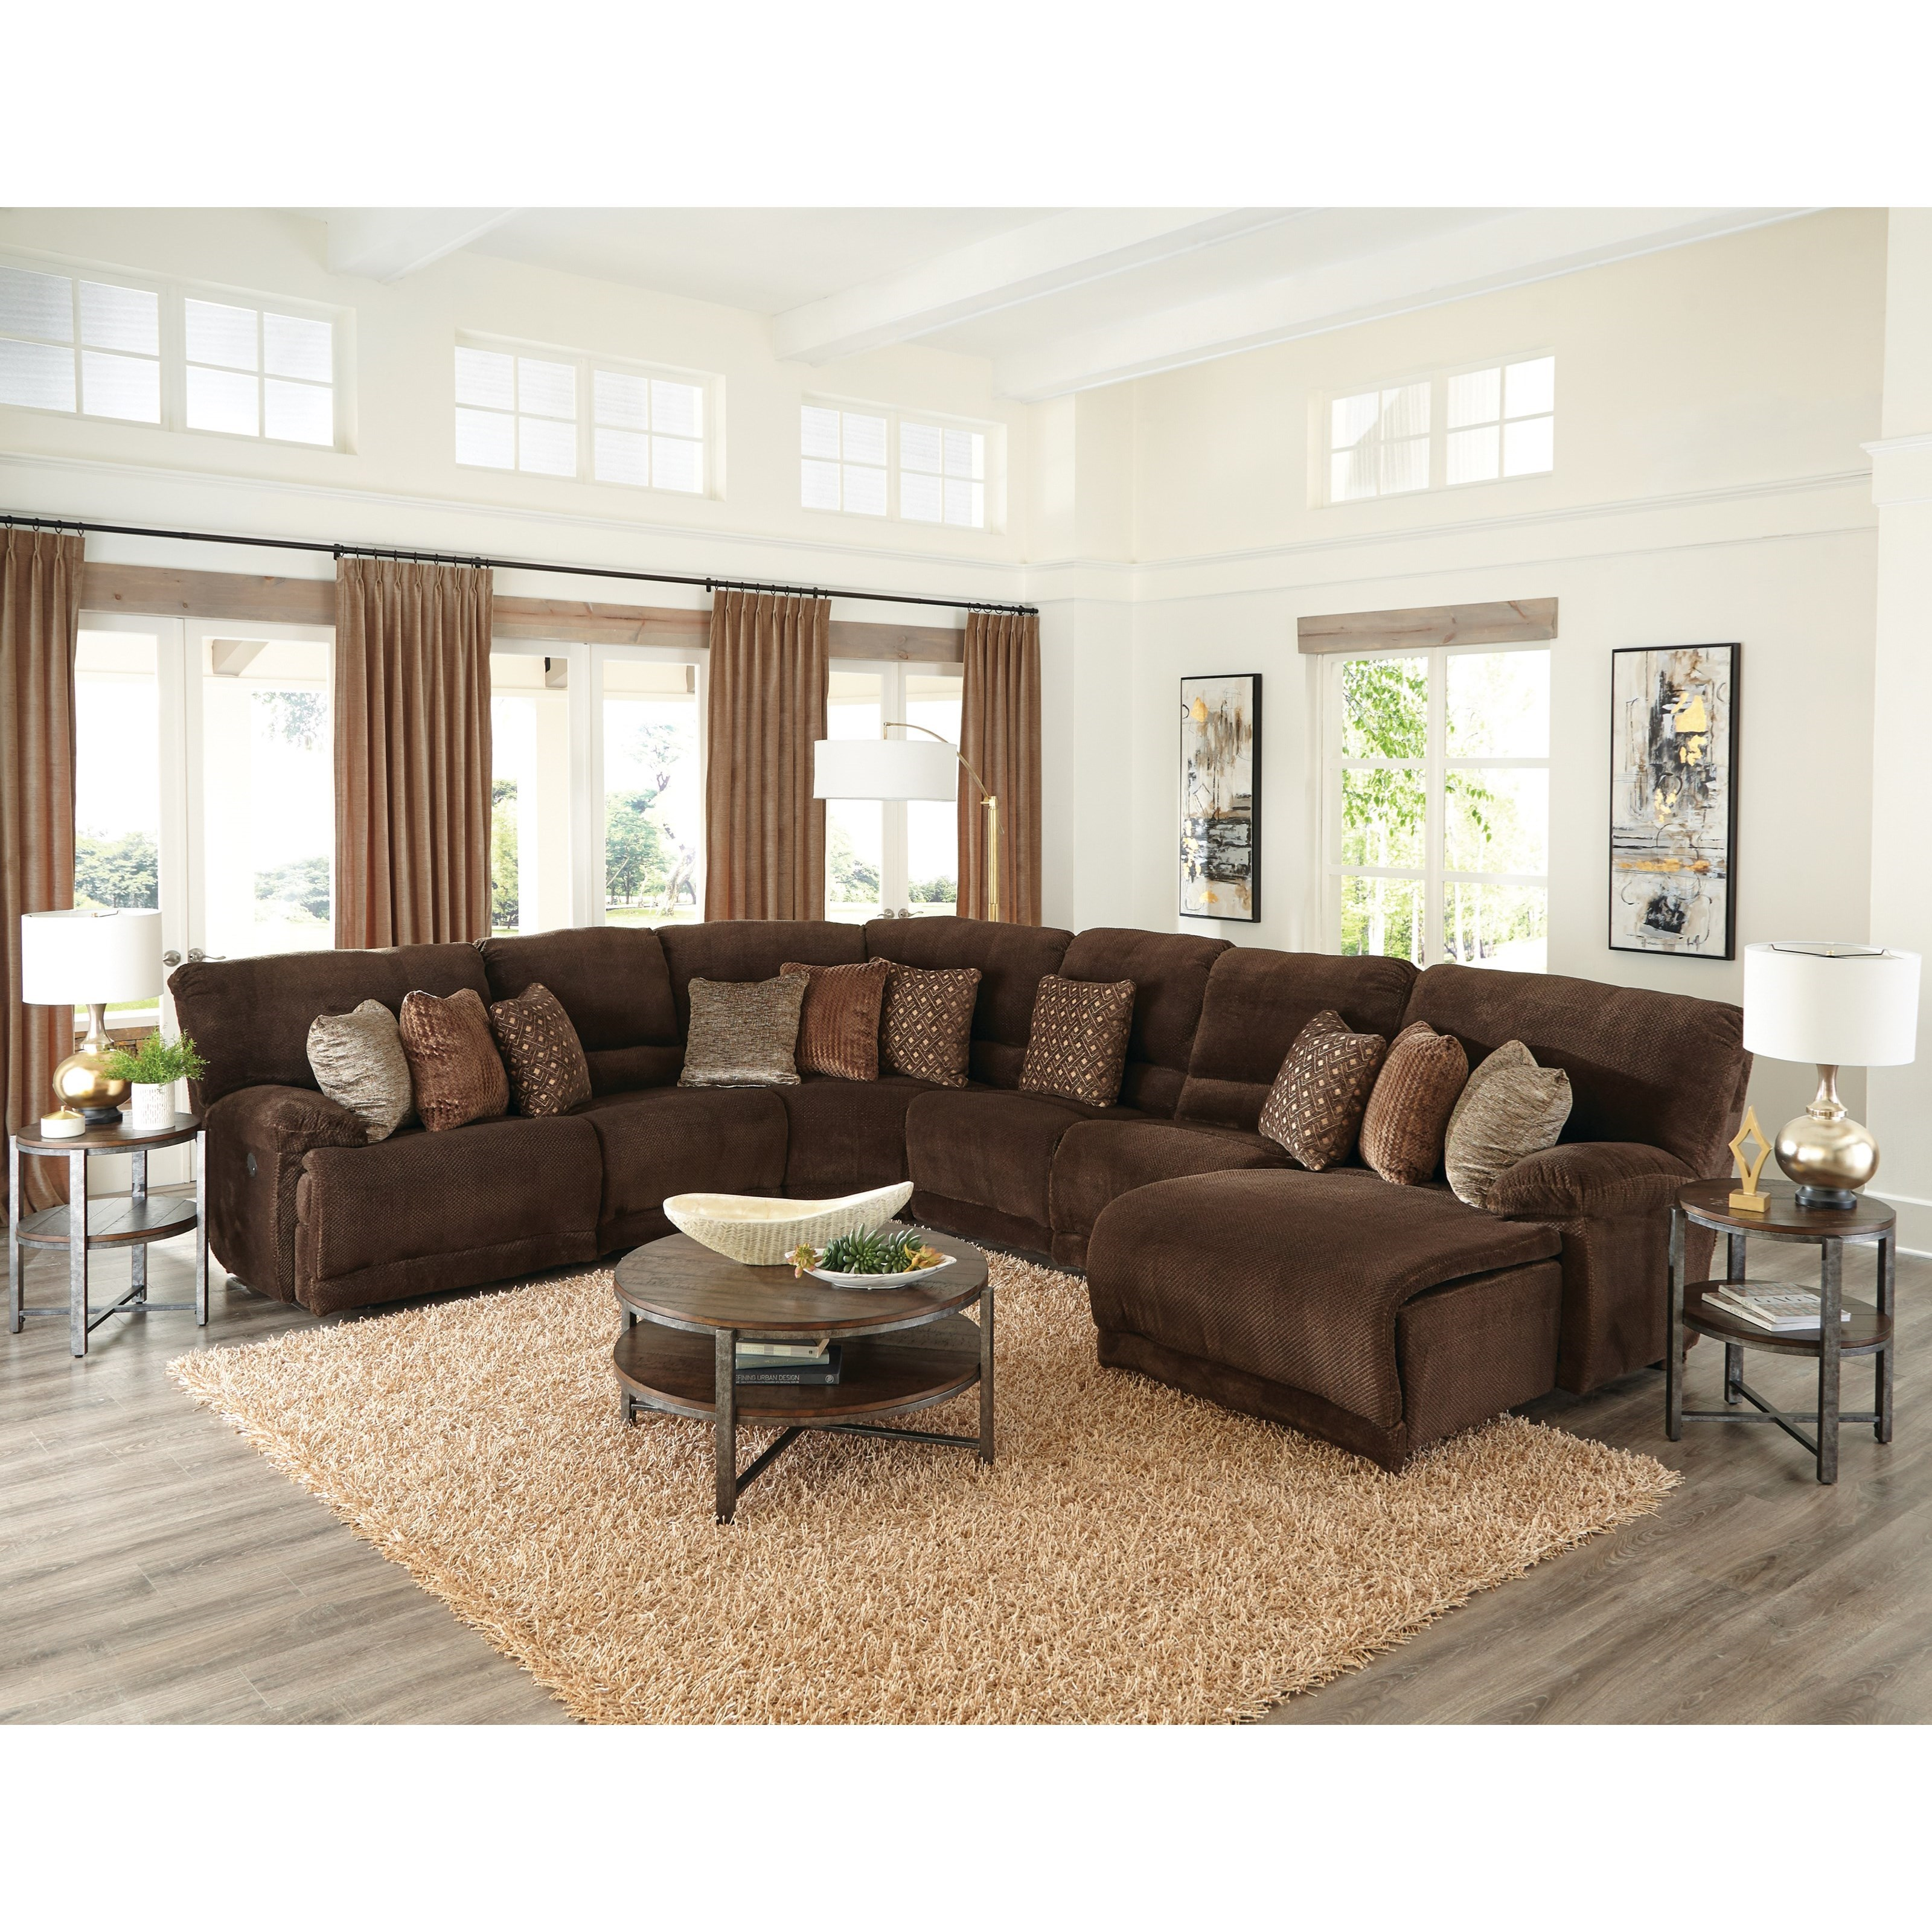 Burbank Power Reclining Sectional by Catnapper at Northeast Factory Direct